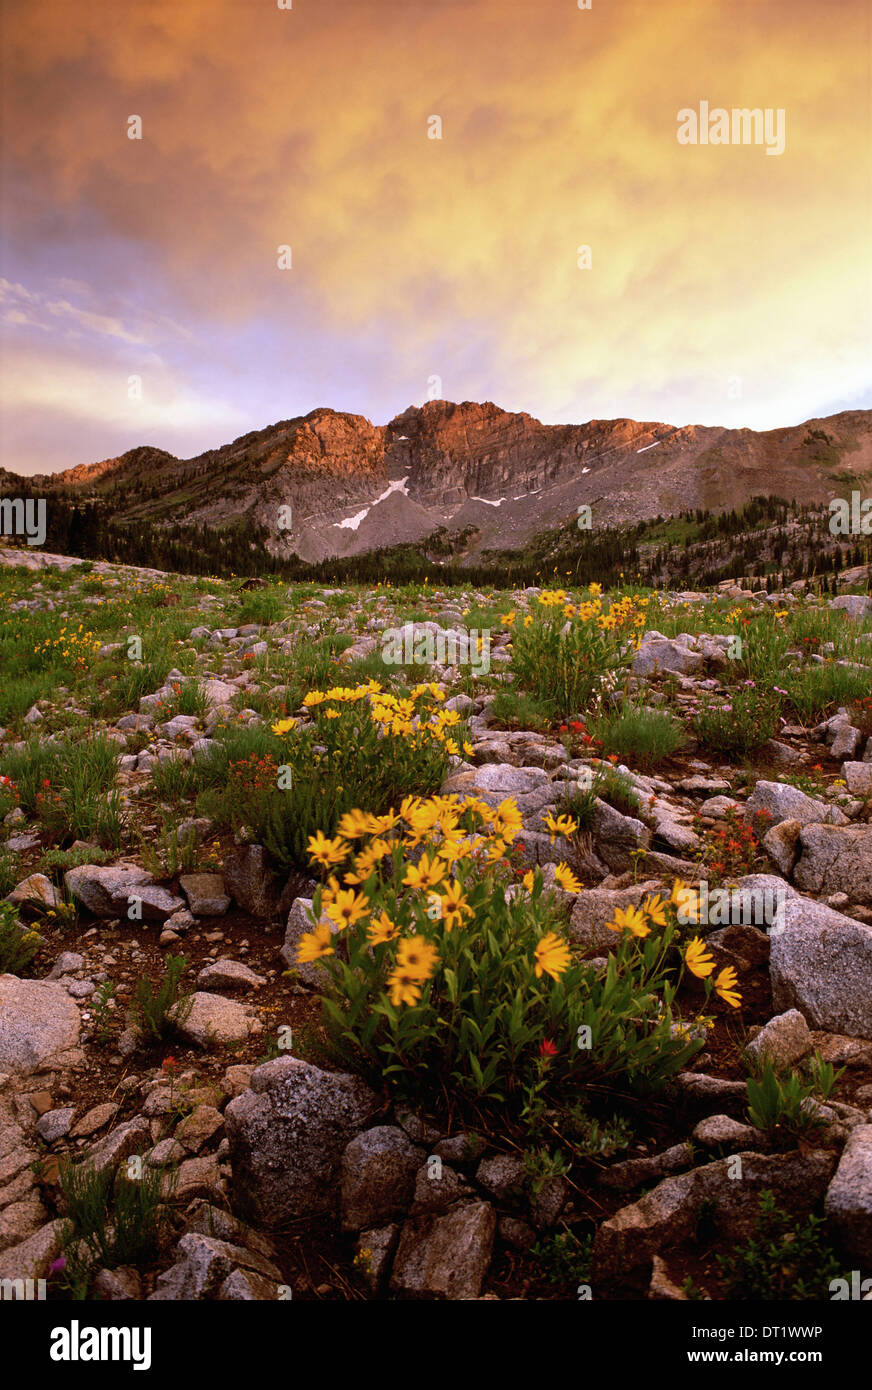 Landscape of Little Cottonwood Canyon with the Devil's Castle mountain peak in the Wasatch mountain range Wild flowers Sunset - Stock Image